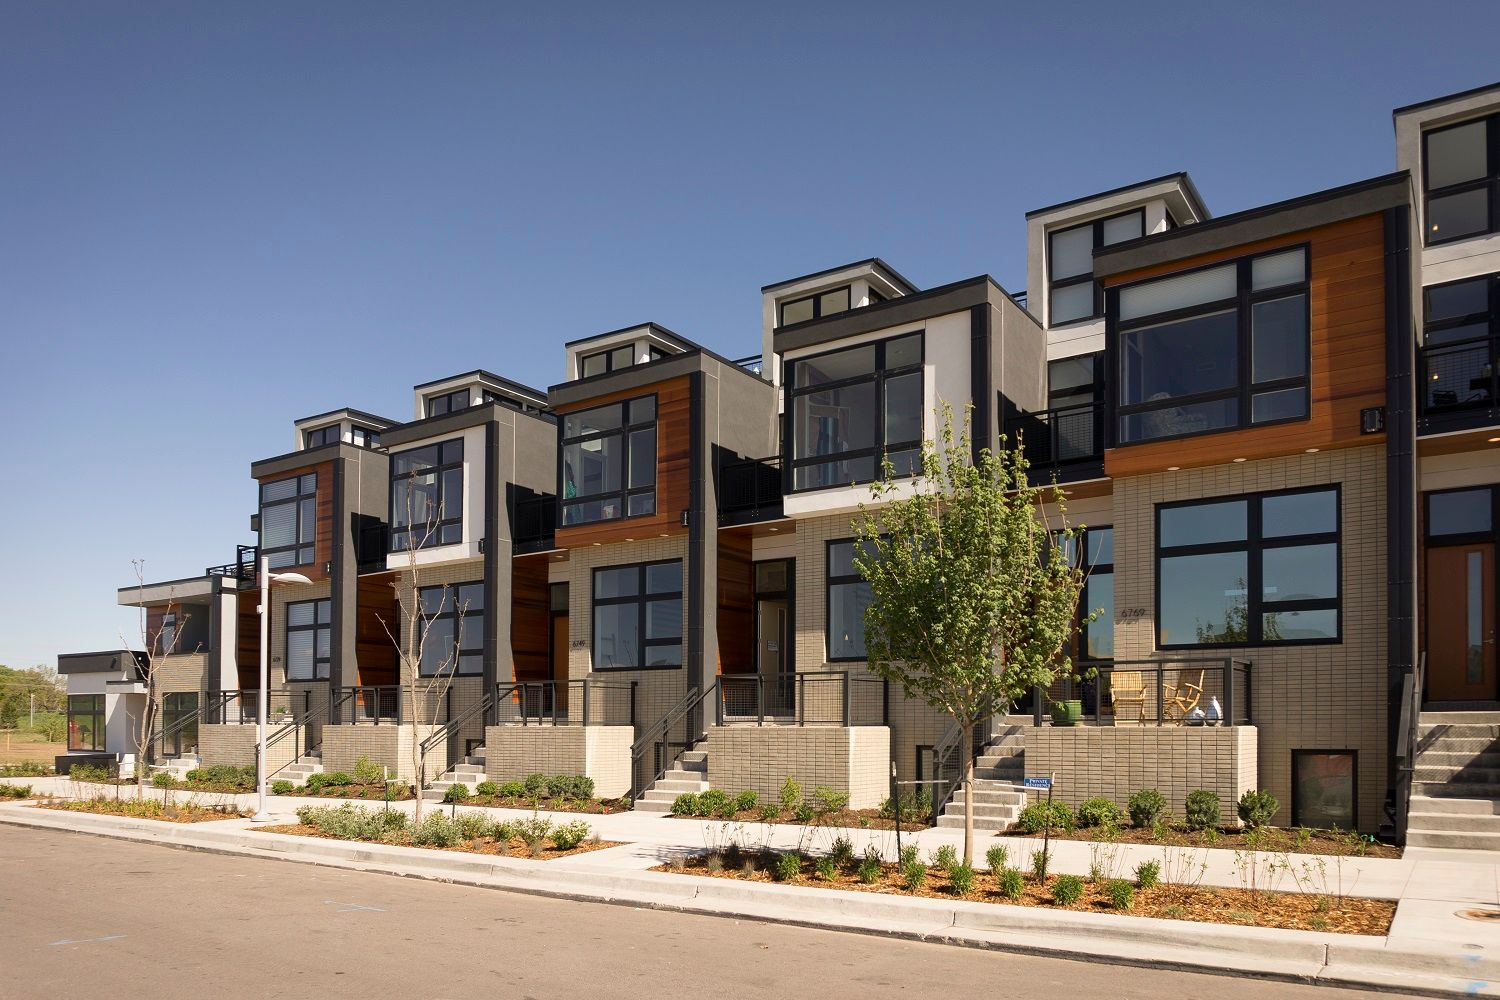 'CityHomes at Boulevard One' by CityHomes at Boulevard One in Denver